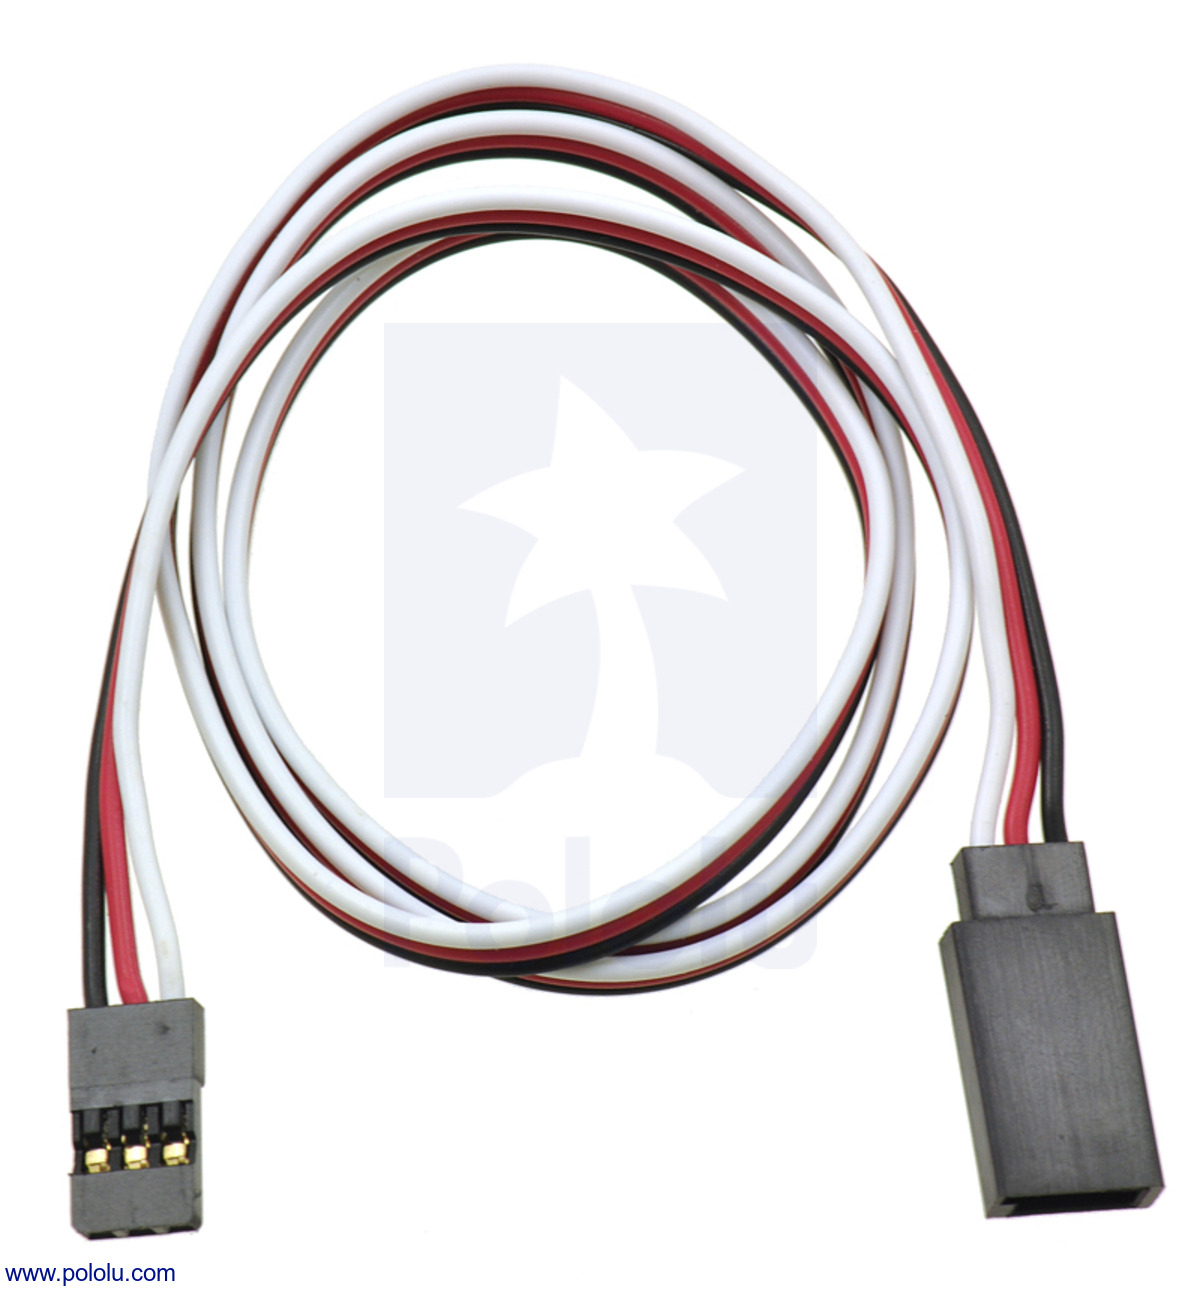 medium resolution of servo extension cable 24 male female